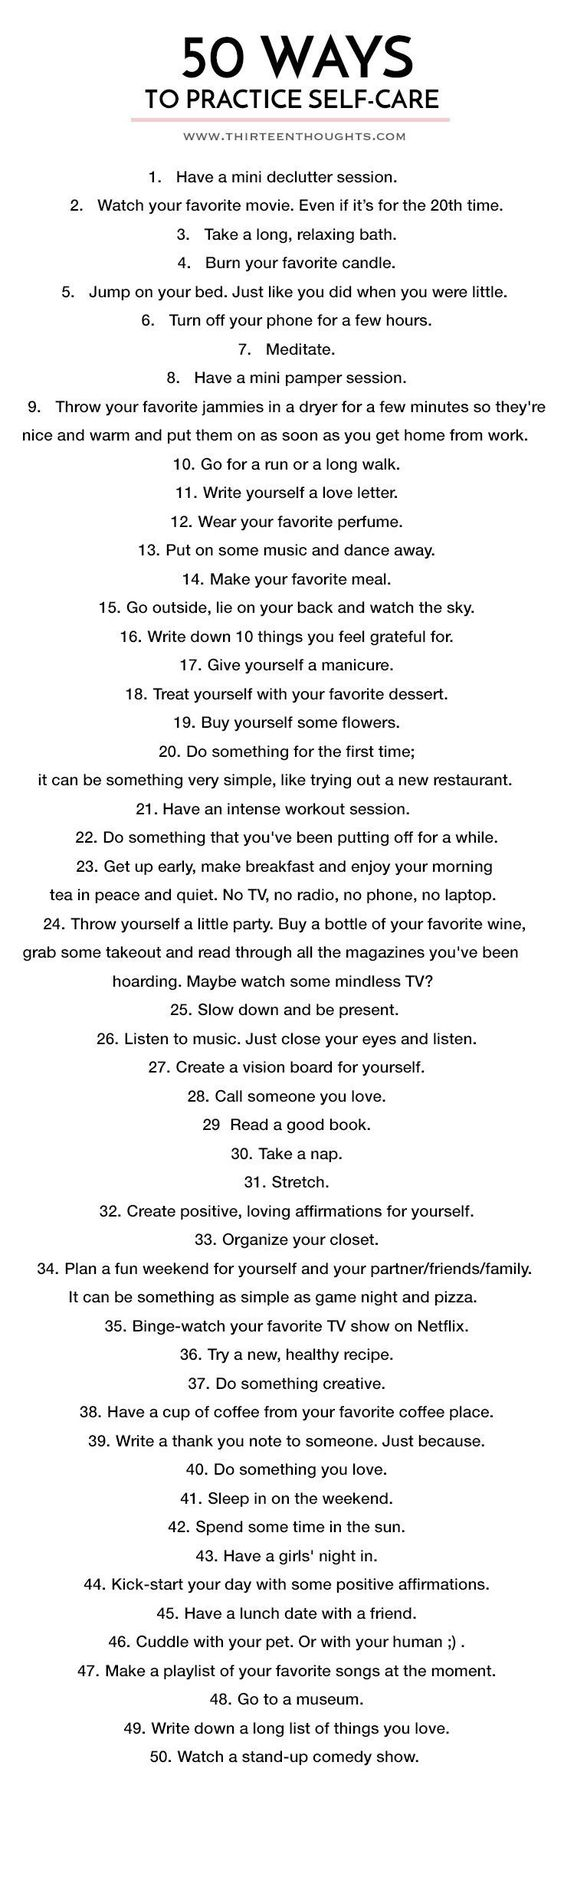 50 Ways To Practice Self-Care. Self-love is a spiritual practice! To be happy…: